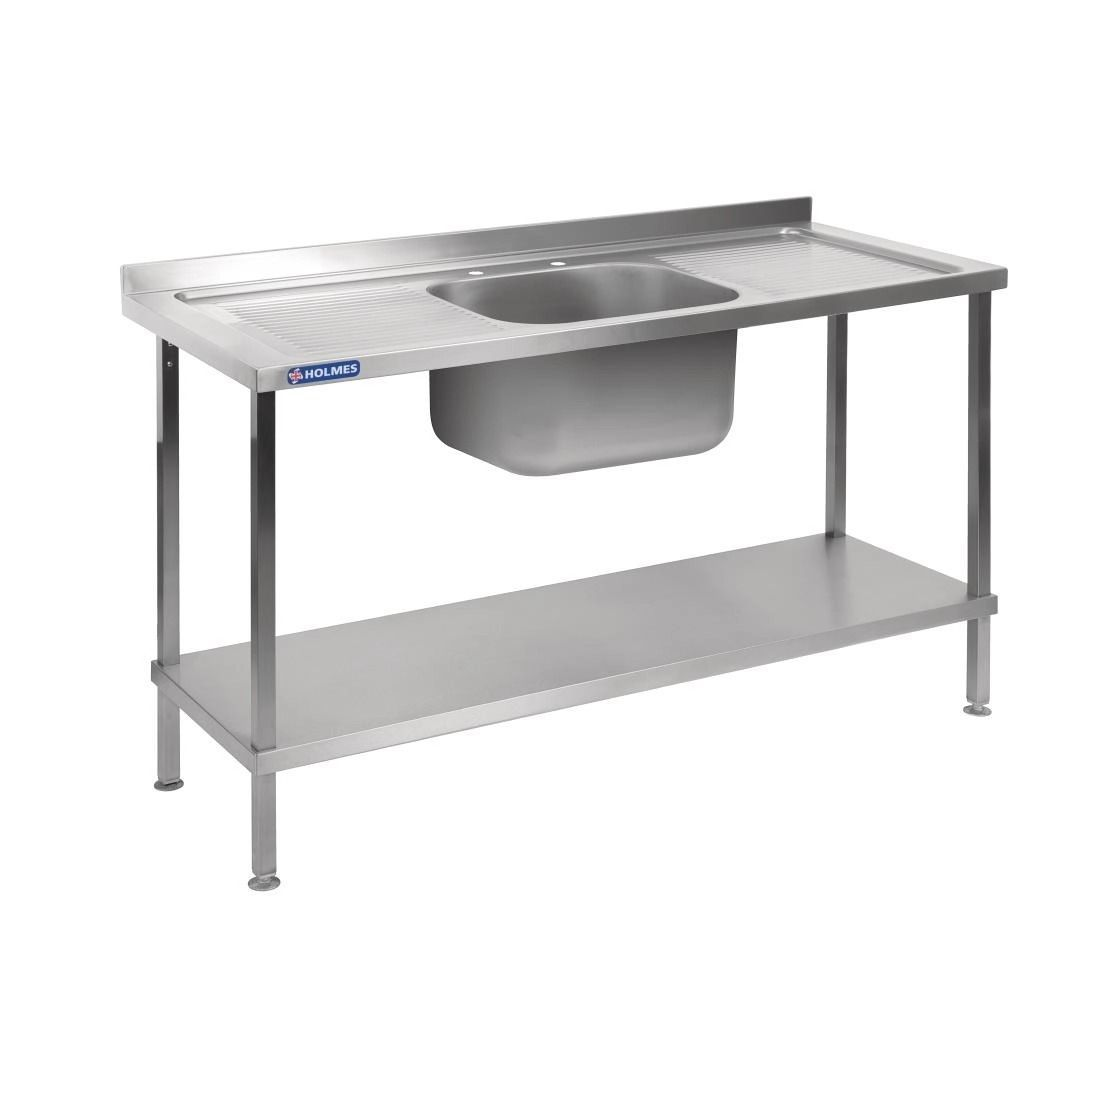 Holmes Stainless Steel Sink Double Drainer 1800mm - DR397